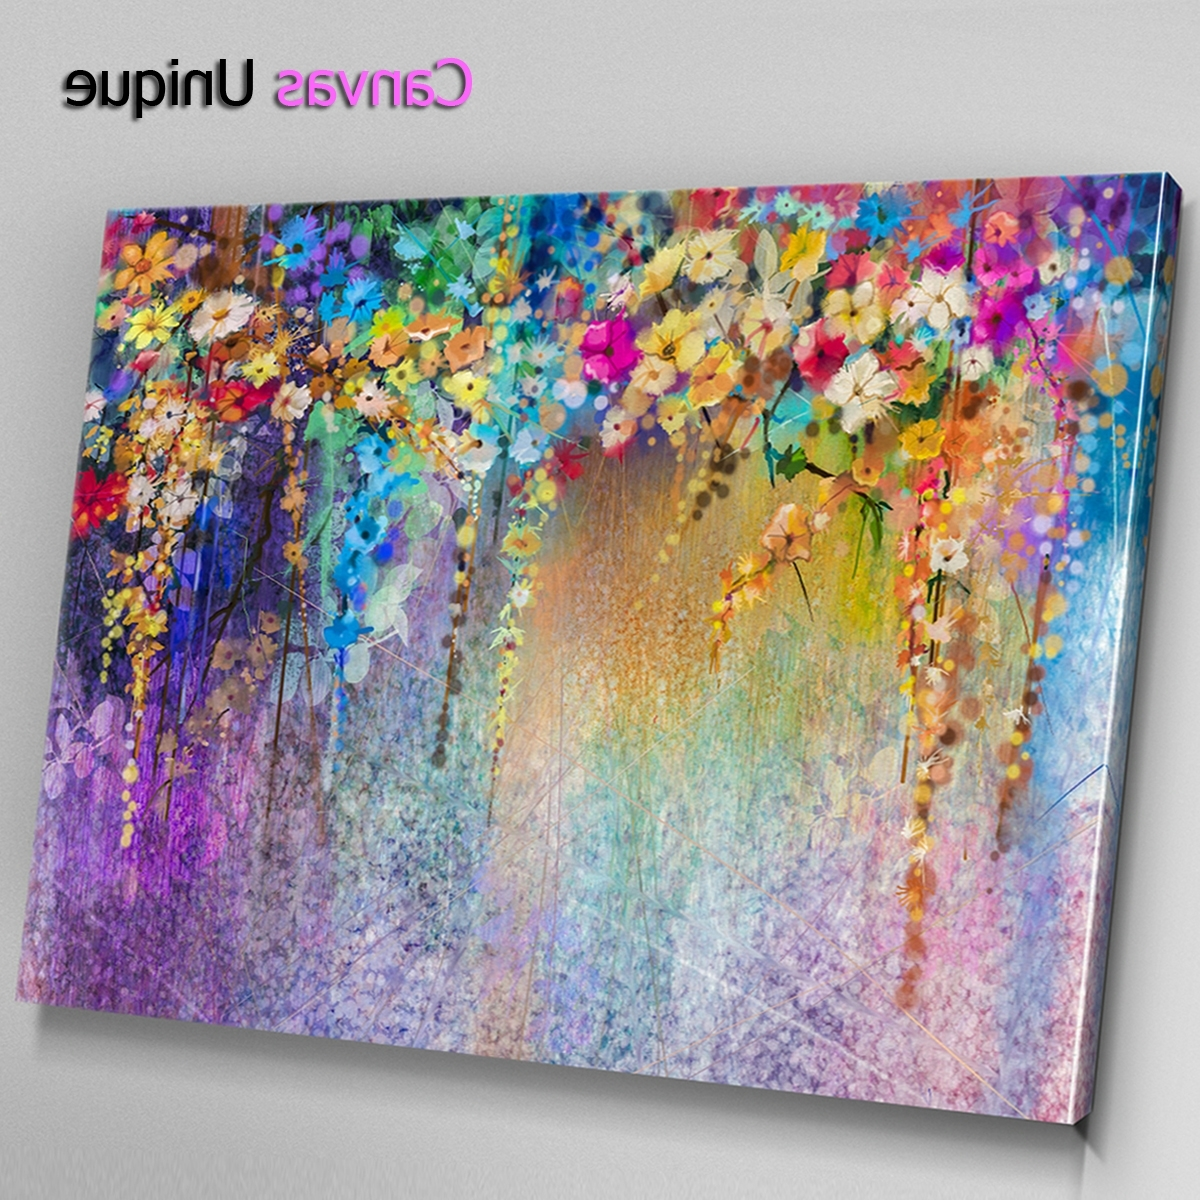 Well Known Purple Abstract Wall Art Intended For Ab1535 Purple Blue Modern Floral Abstract Wall Art Picture Large (View 9 of 15)